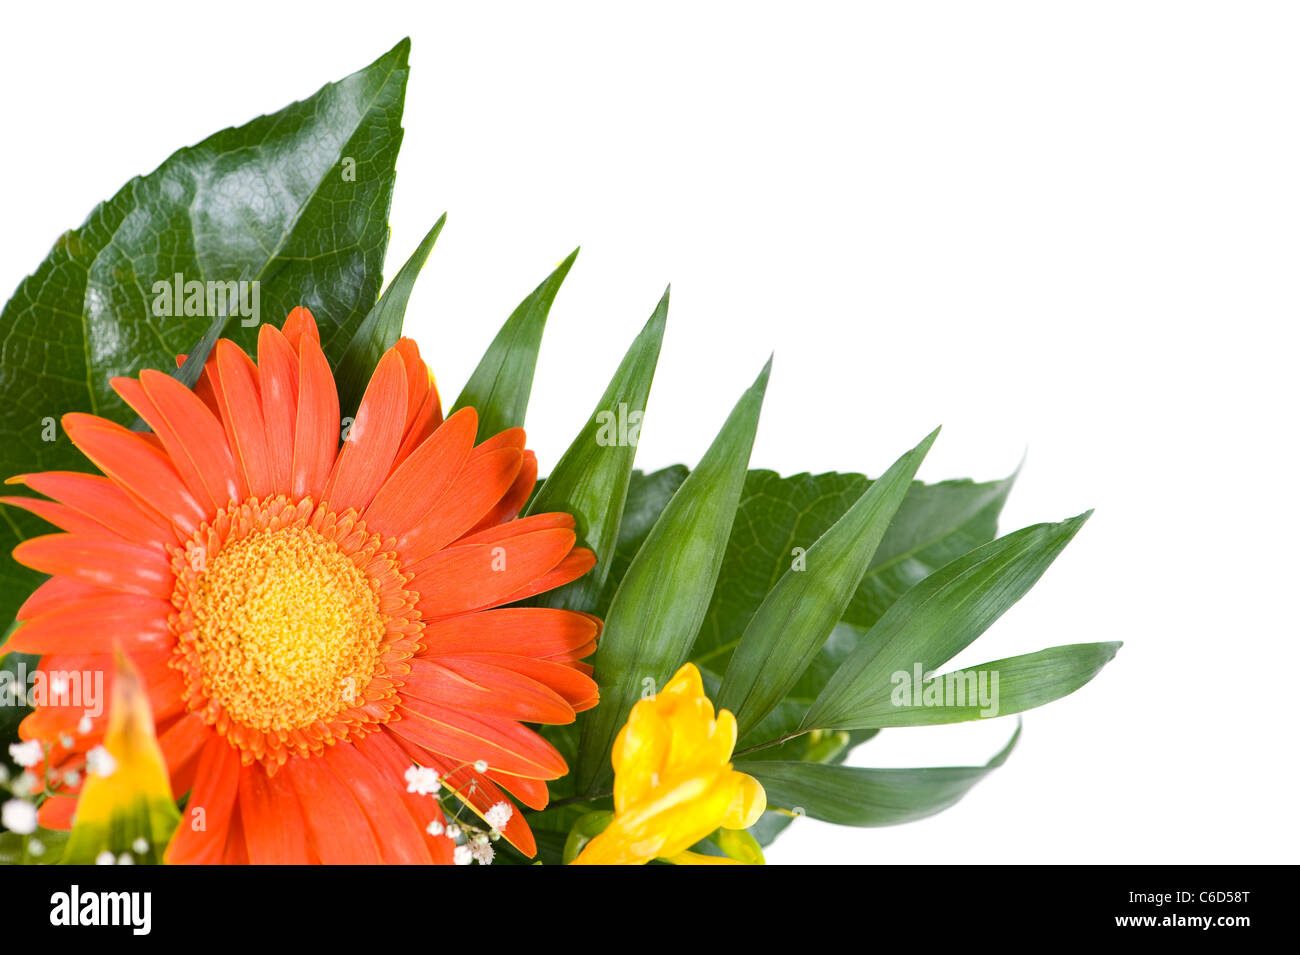 Wedding Flowers Freesia And Gerbera Daisy Stock Photo 38398216 Alamy